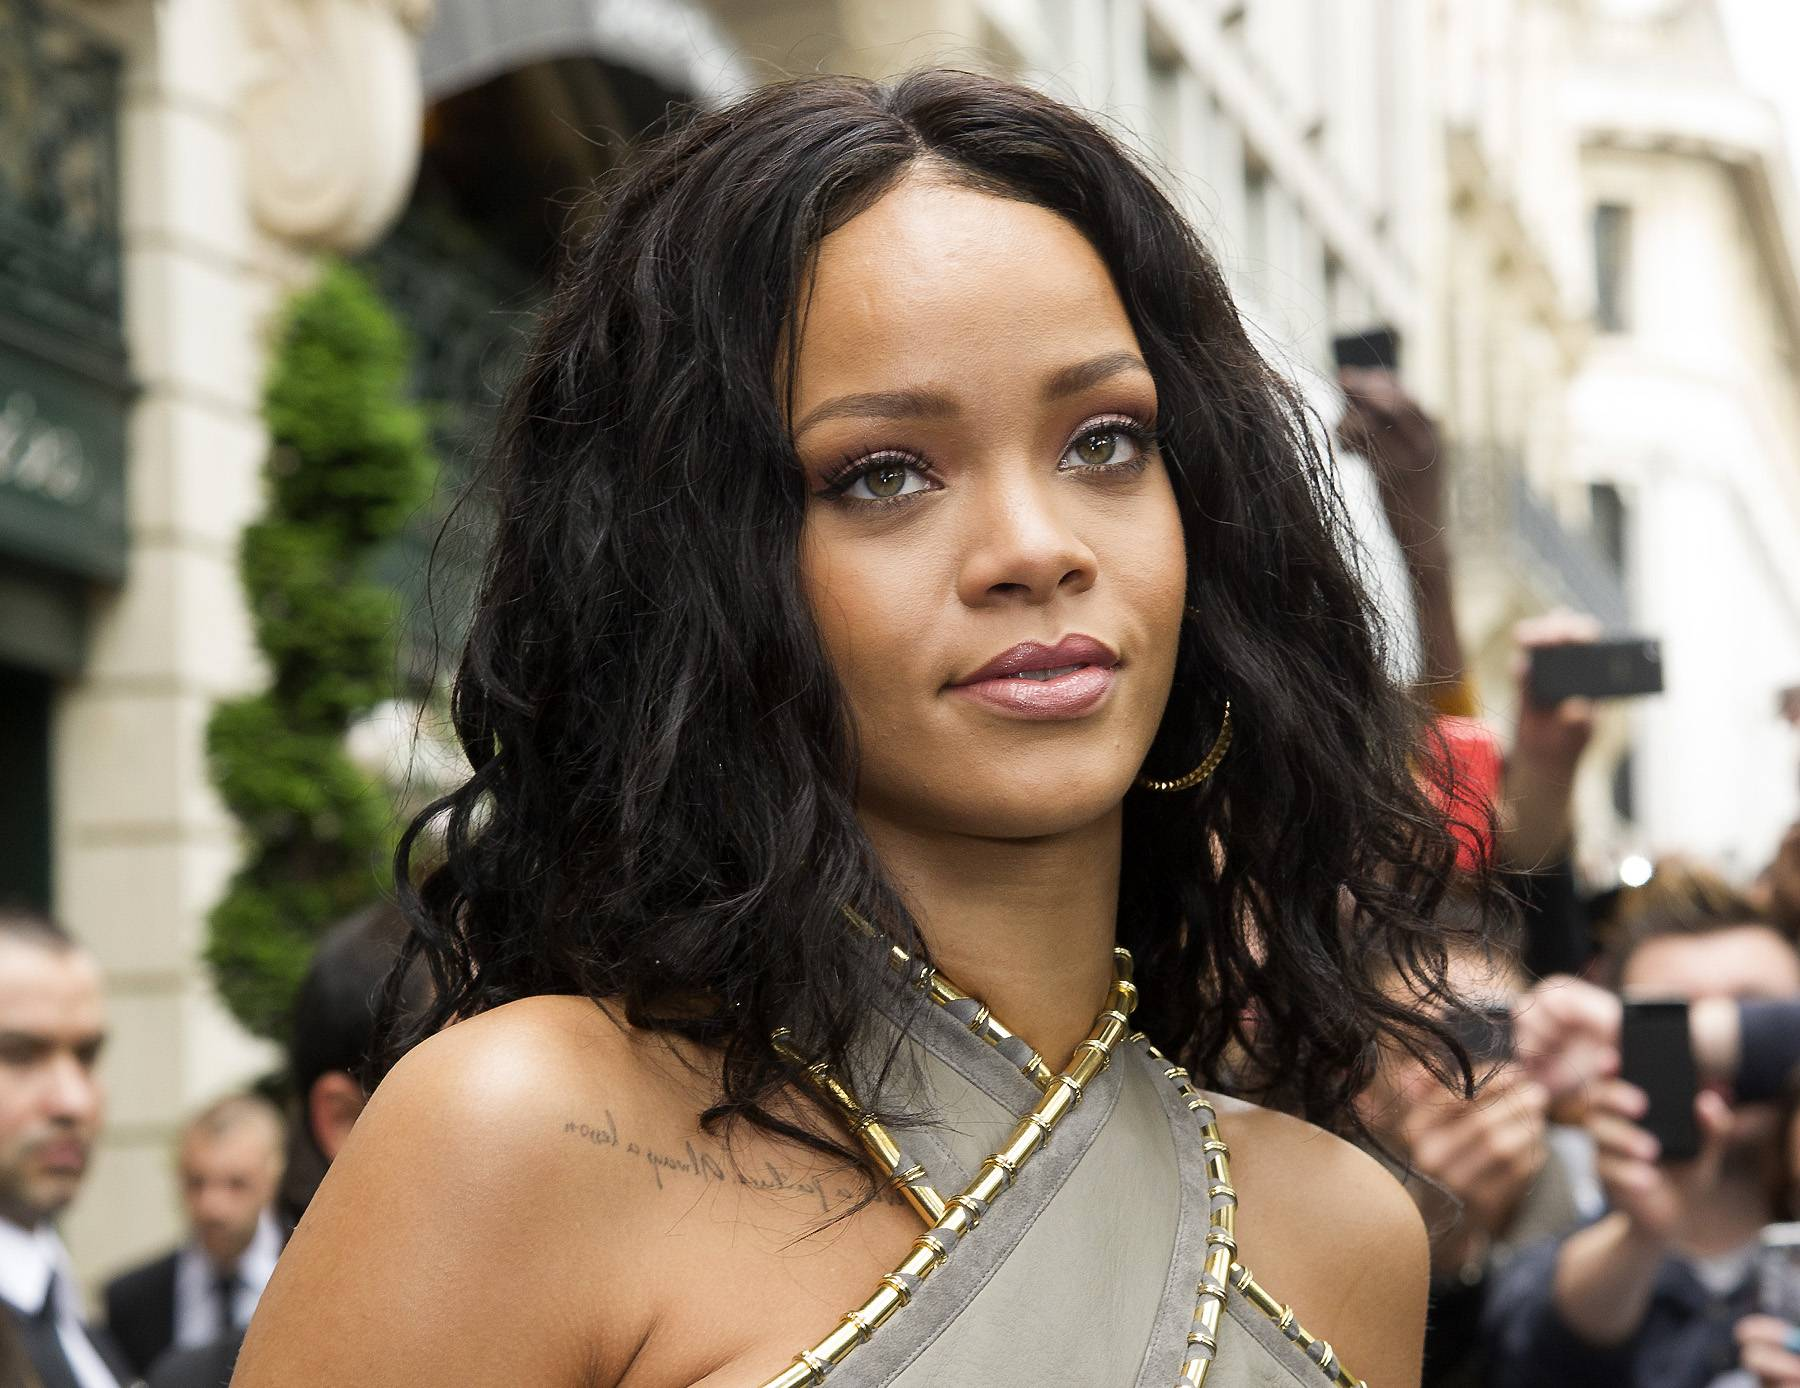 """Rih-traction - Rihanna is known to tell it like it is; however, the pop star recently got caught up in a tweet-and-delete after tweeting """"#FreePalestine."""" She later replaced it with a less controversialpost about the feud between Israel and Palestine, but that move came with much online chatter, too — about whether or not a retraction was appropriate.The tweet that stayed: """"Let's pray for peace and a swift end to the Israeli-Palestinian conflict! Is there any hope?…""""(Photo: WENN.com)"""